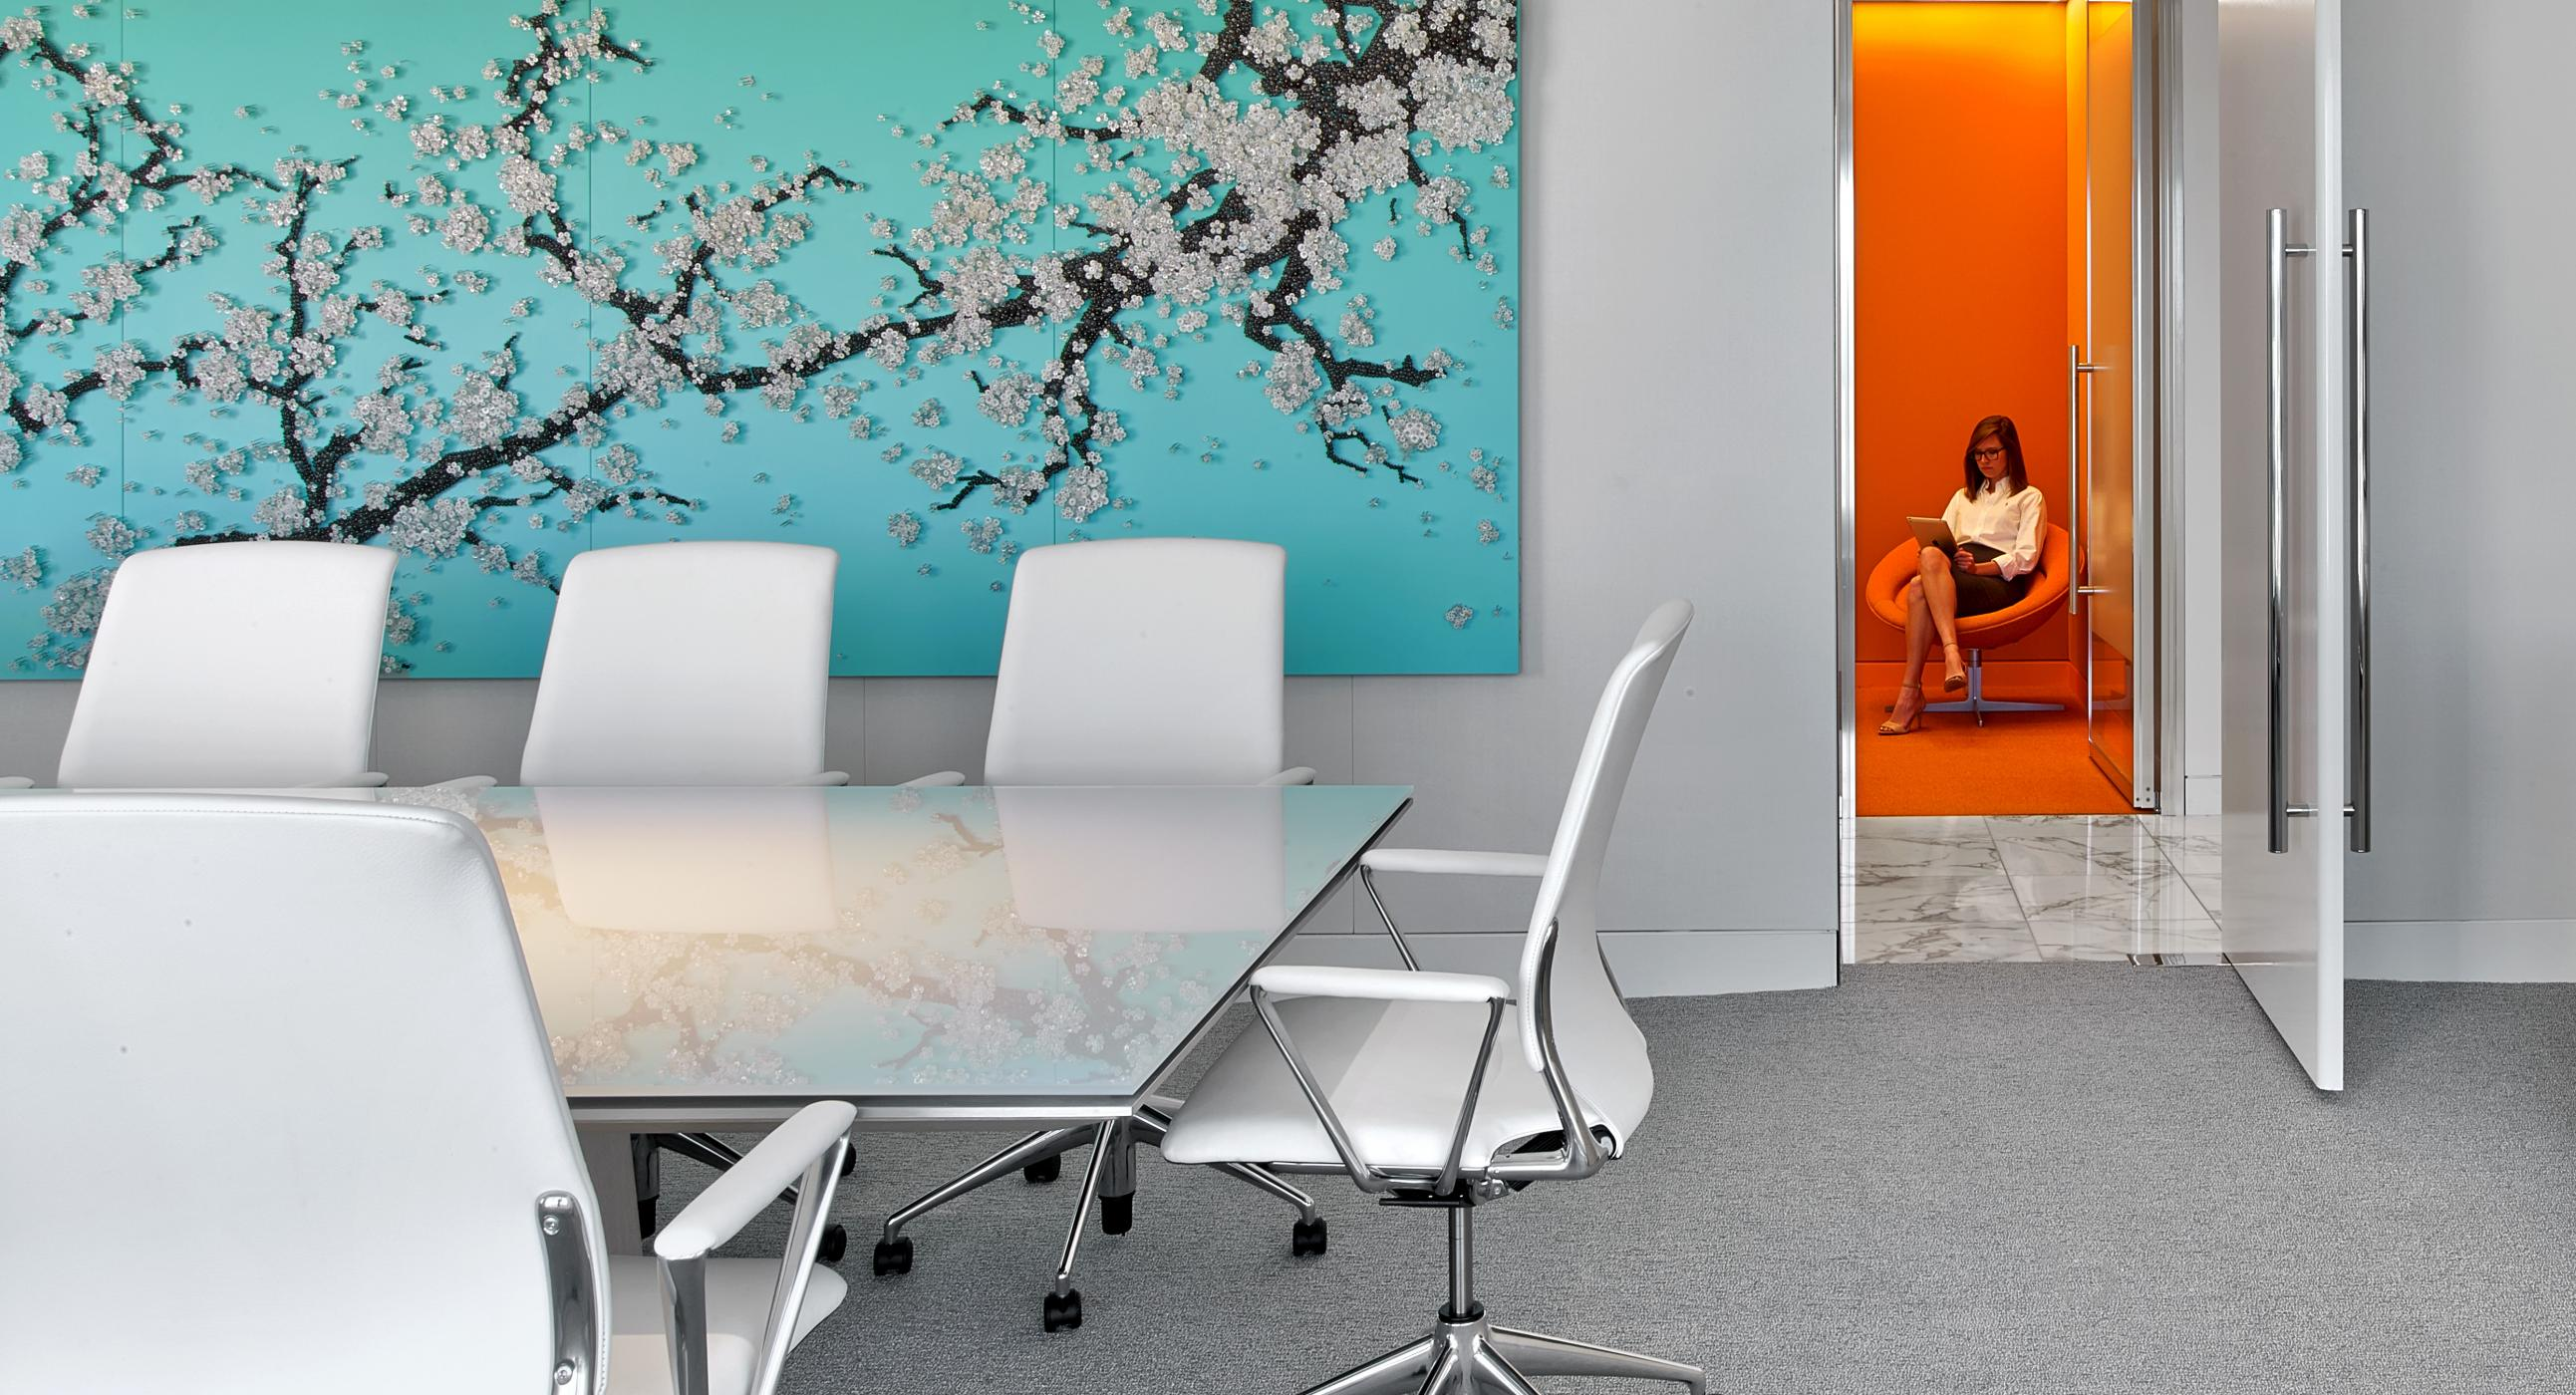 Glass MESA tables provide a beautiful, clean meeting surface for this colorful office.